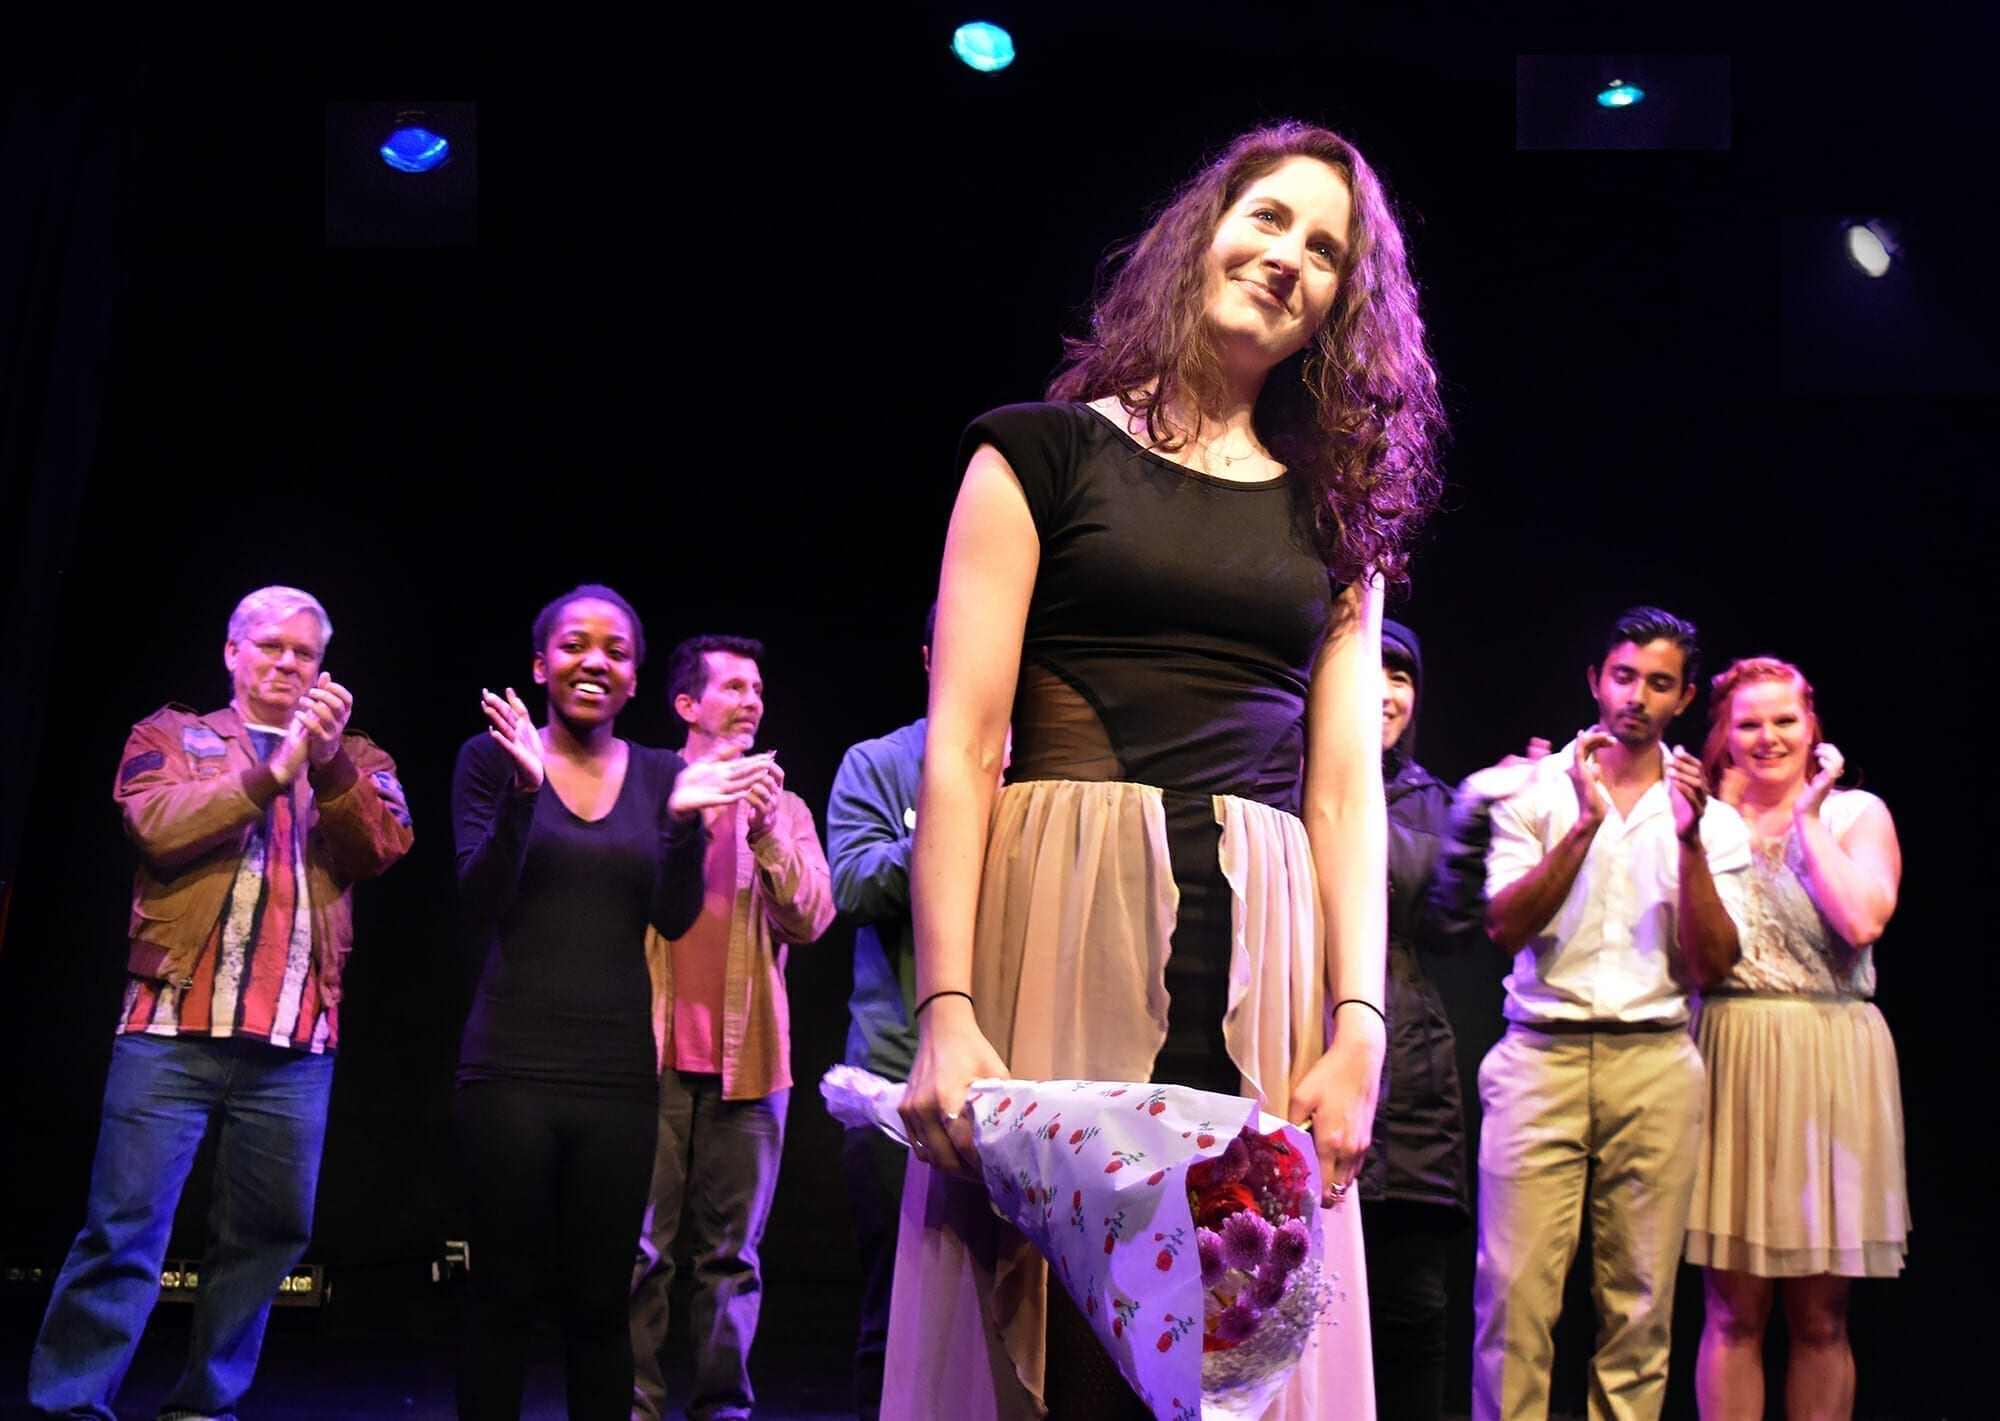 Dori Levit the director and producer of the evening's performances, received a long ovation at the conclusion of Love Revamped